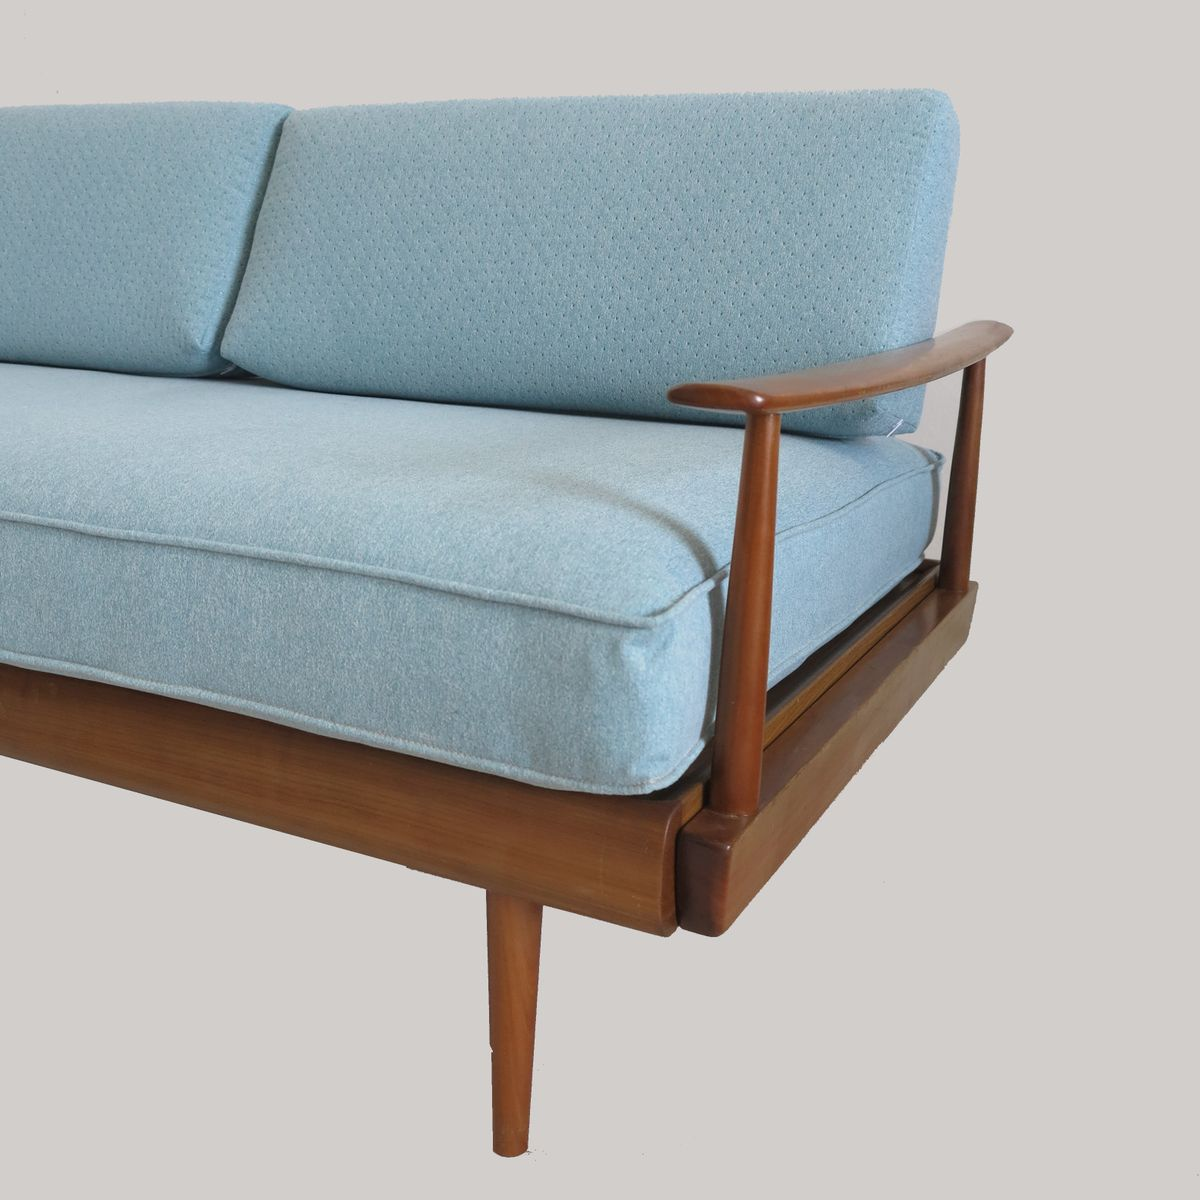 turquoise blue daybed sofa by wilhelm knoll for knoll germany 1960s for sale at pamono. Black Bedroom Furniture Sets. Home Design Ideas